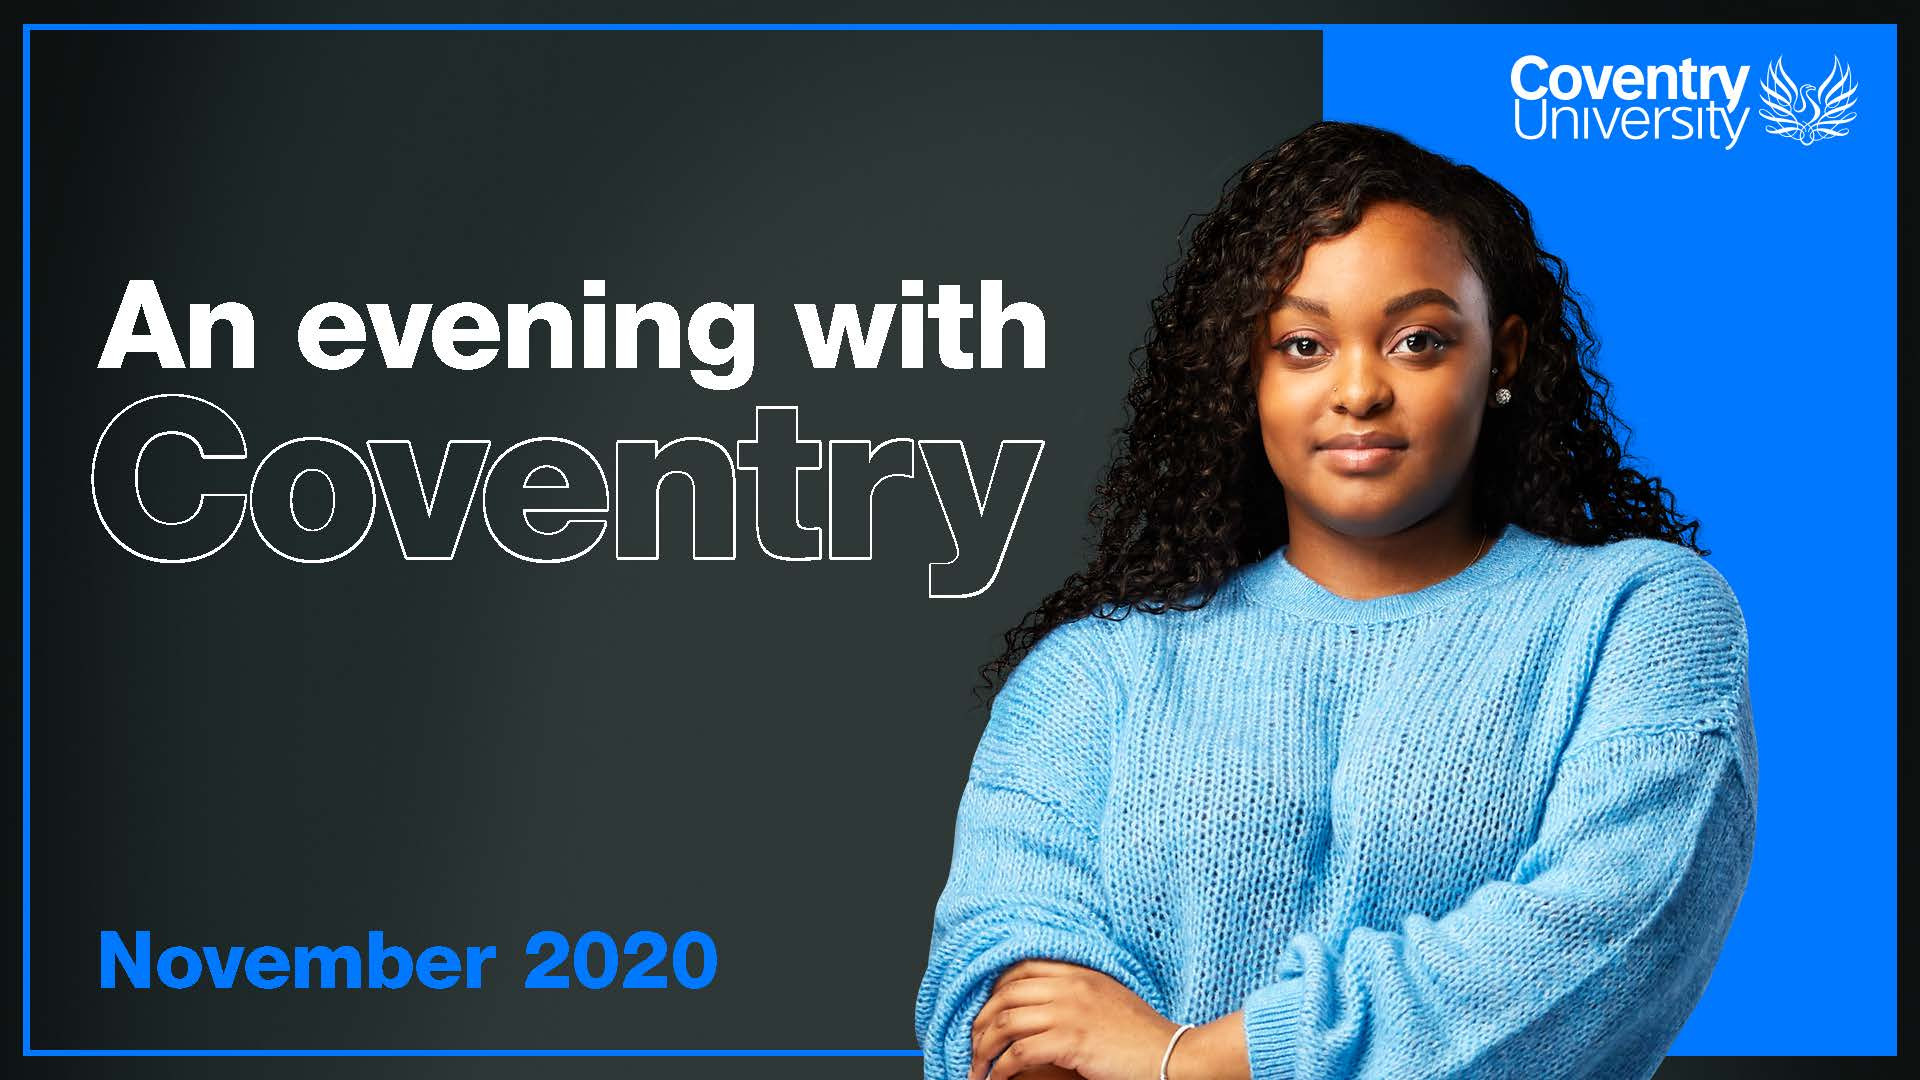 An Evening with Coventry?